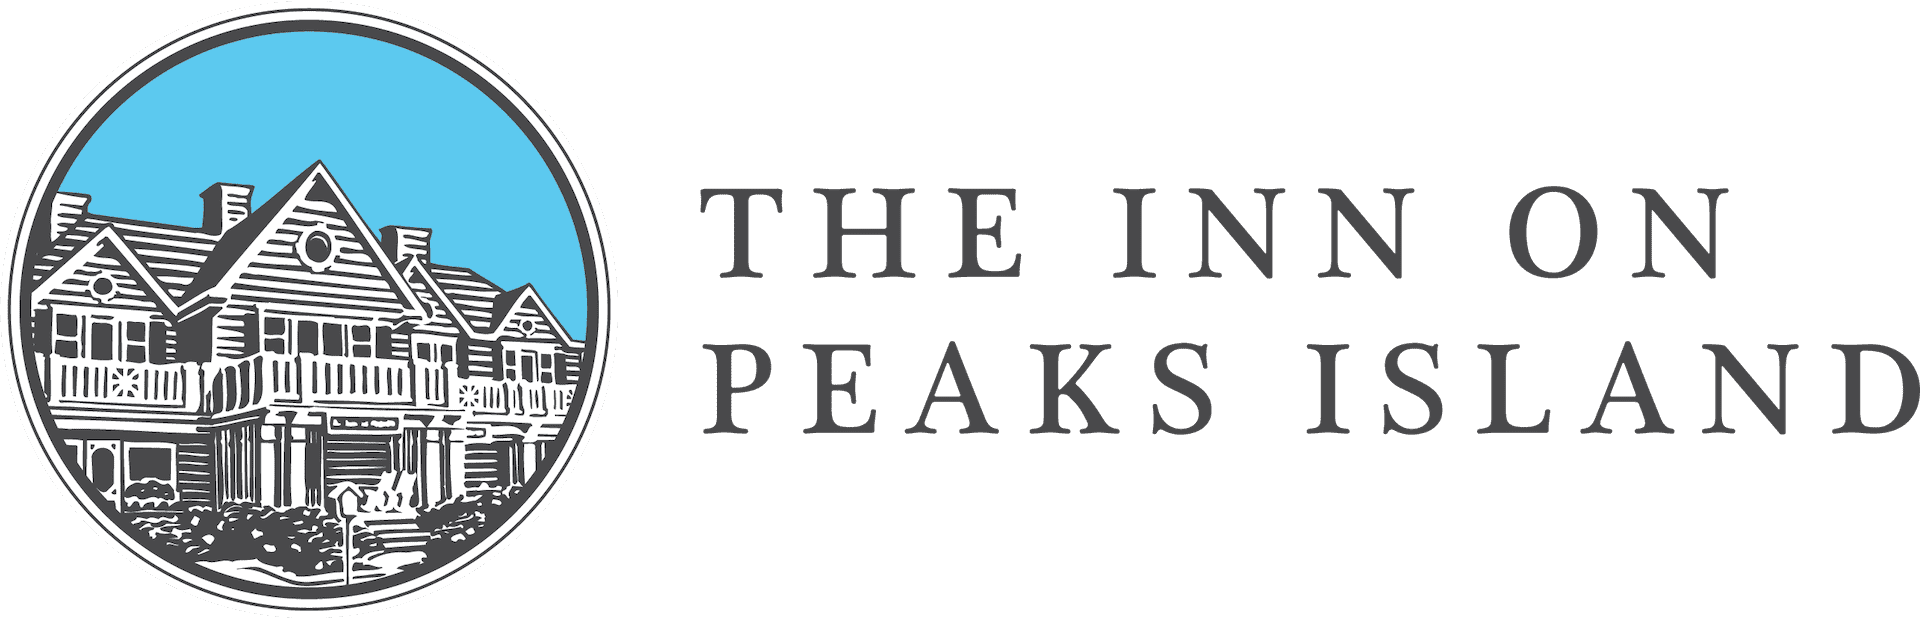 The Inn on Peaks